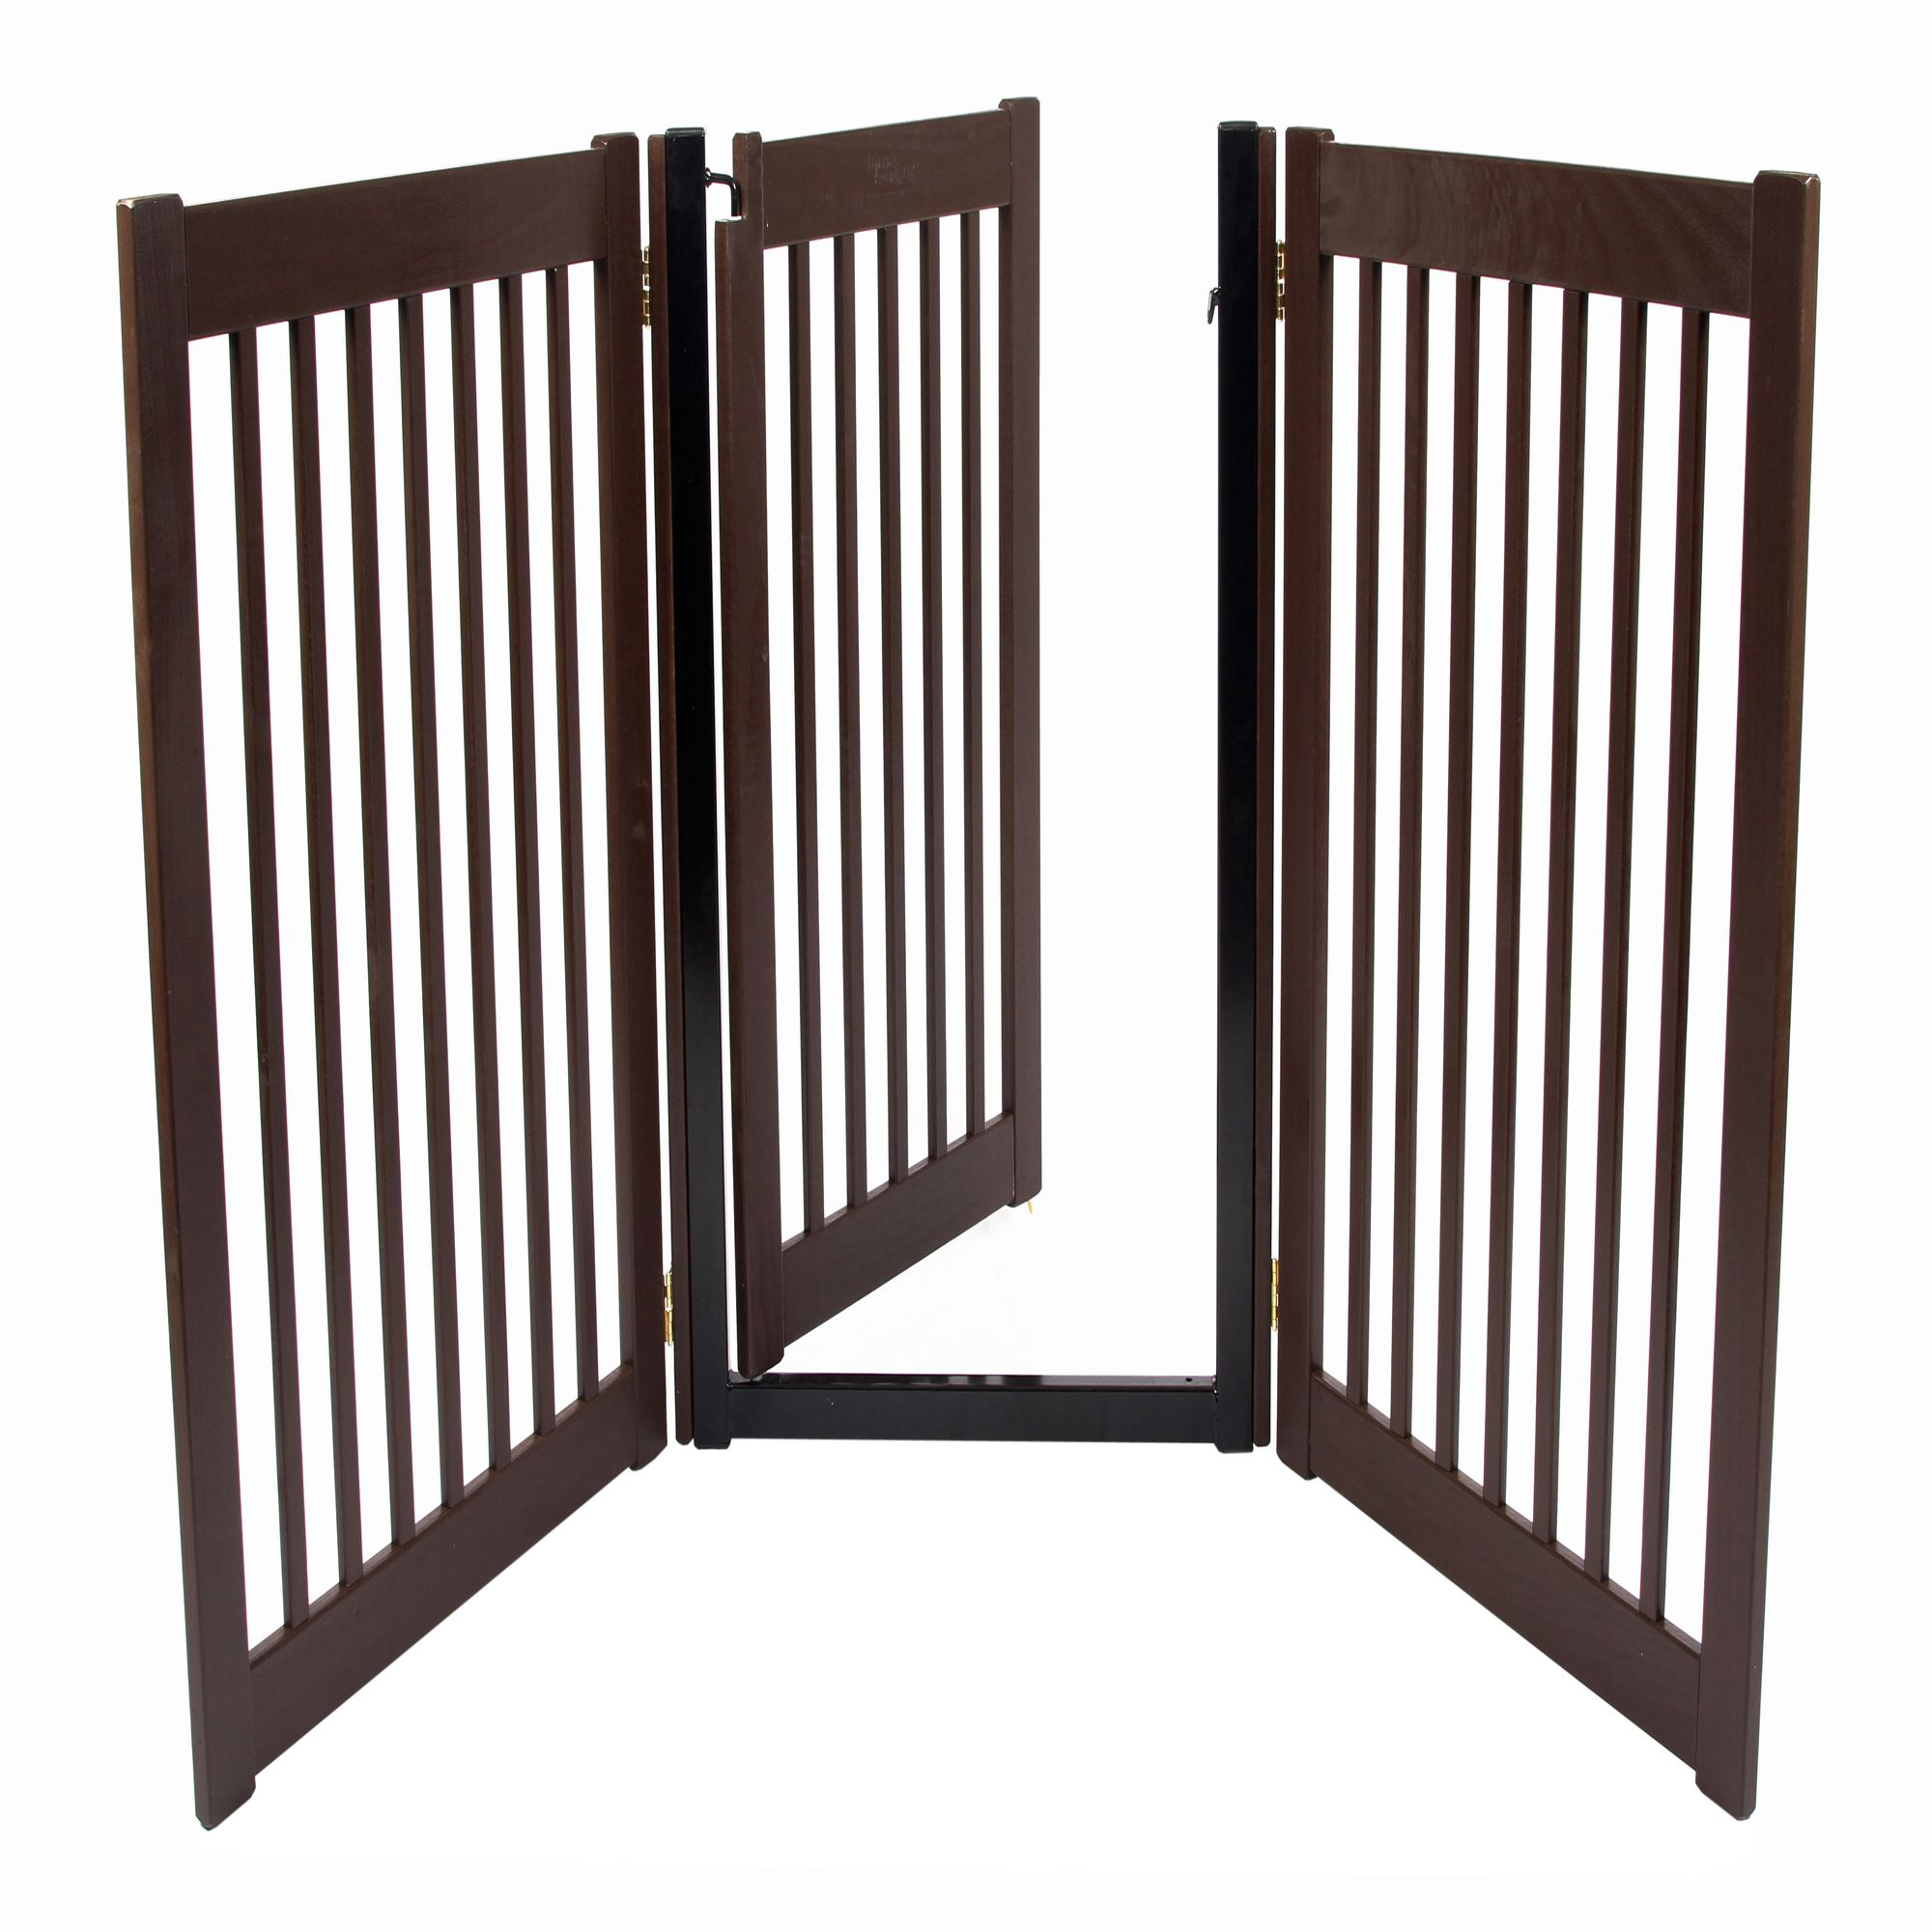 Dynamic accents 32 walk through 3 free standing pet gate